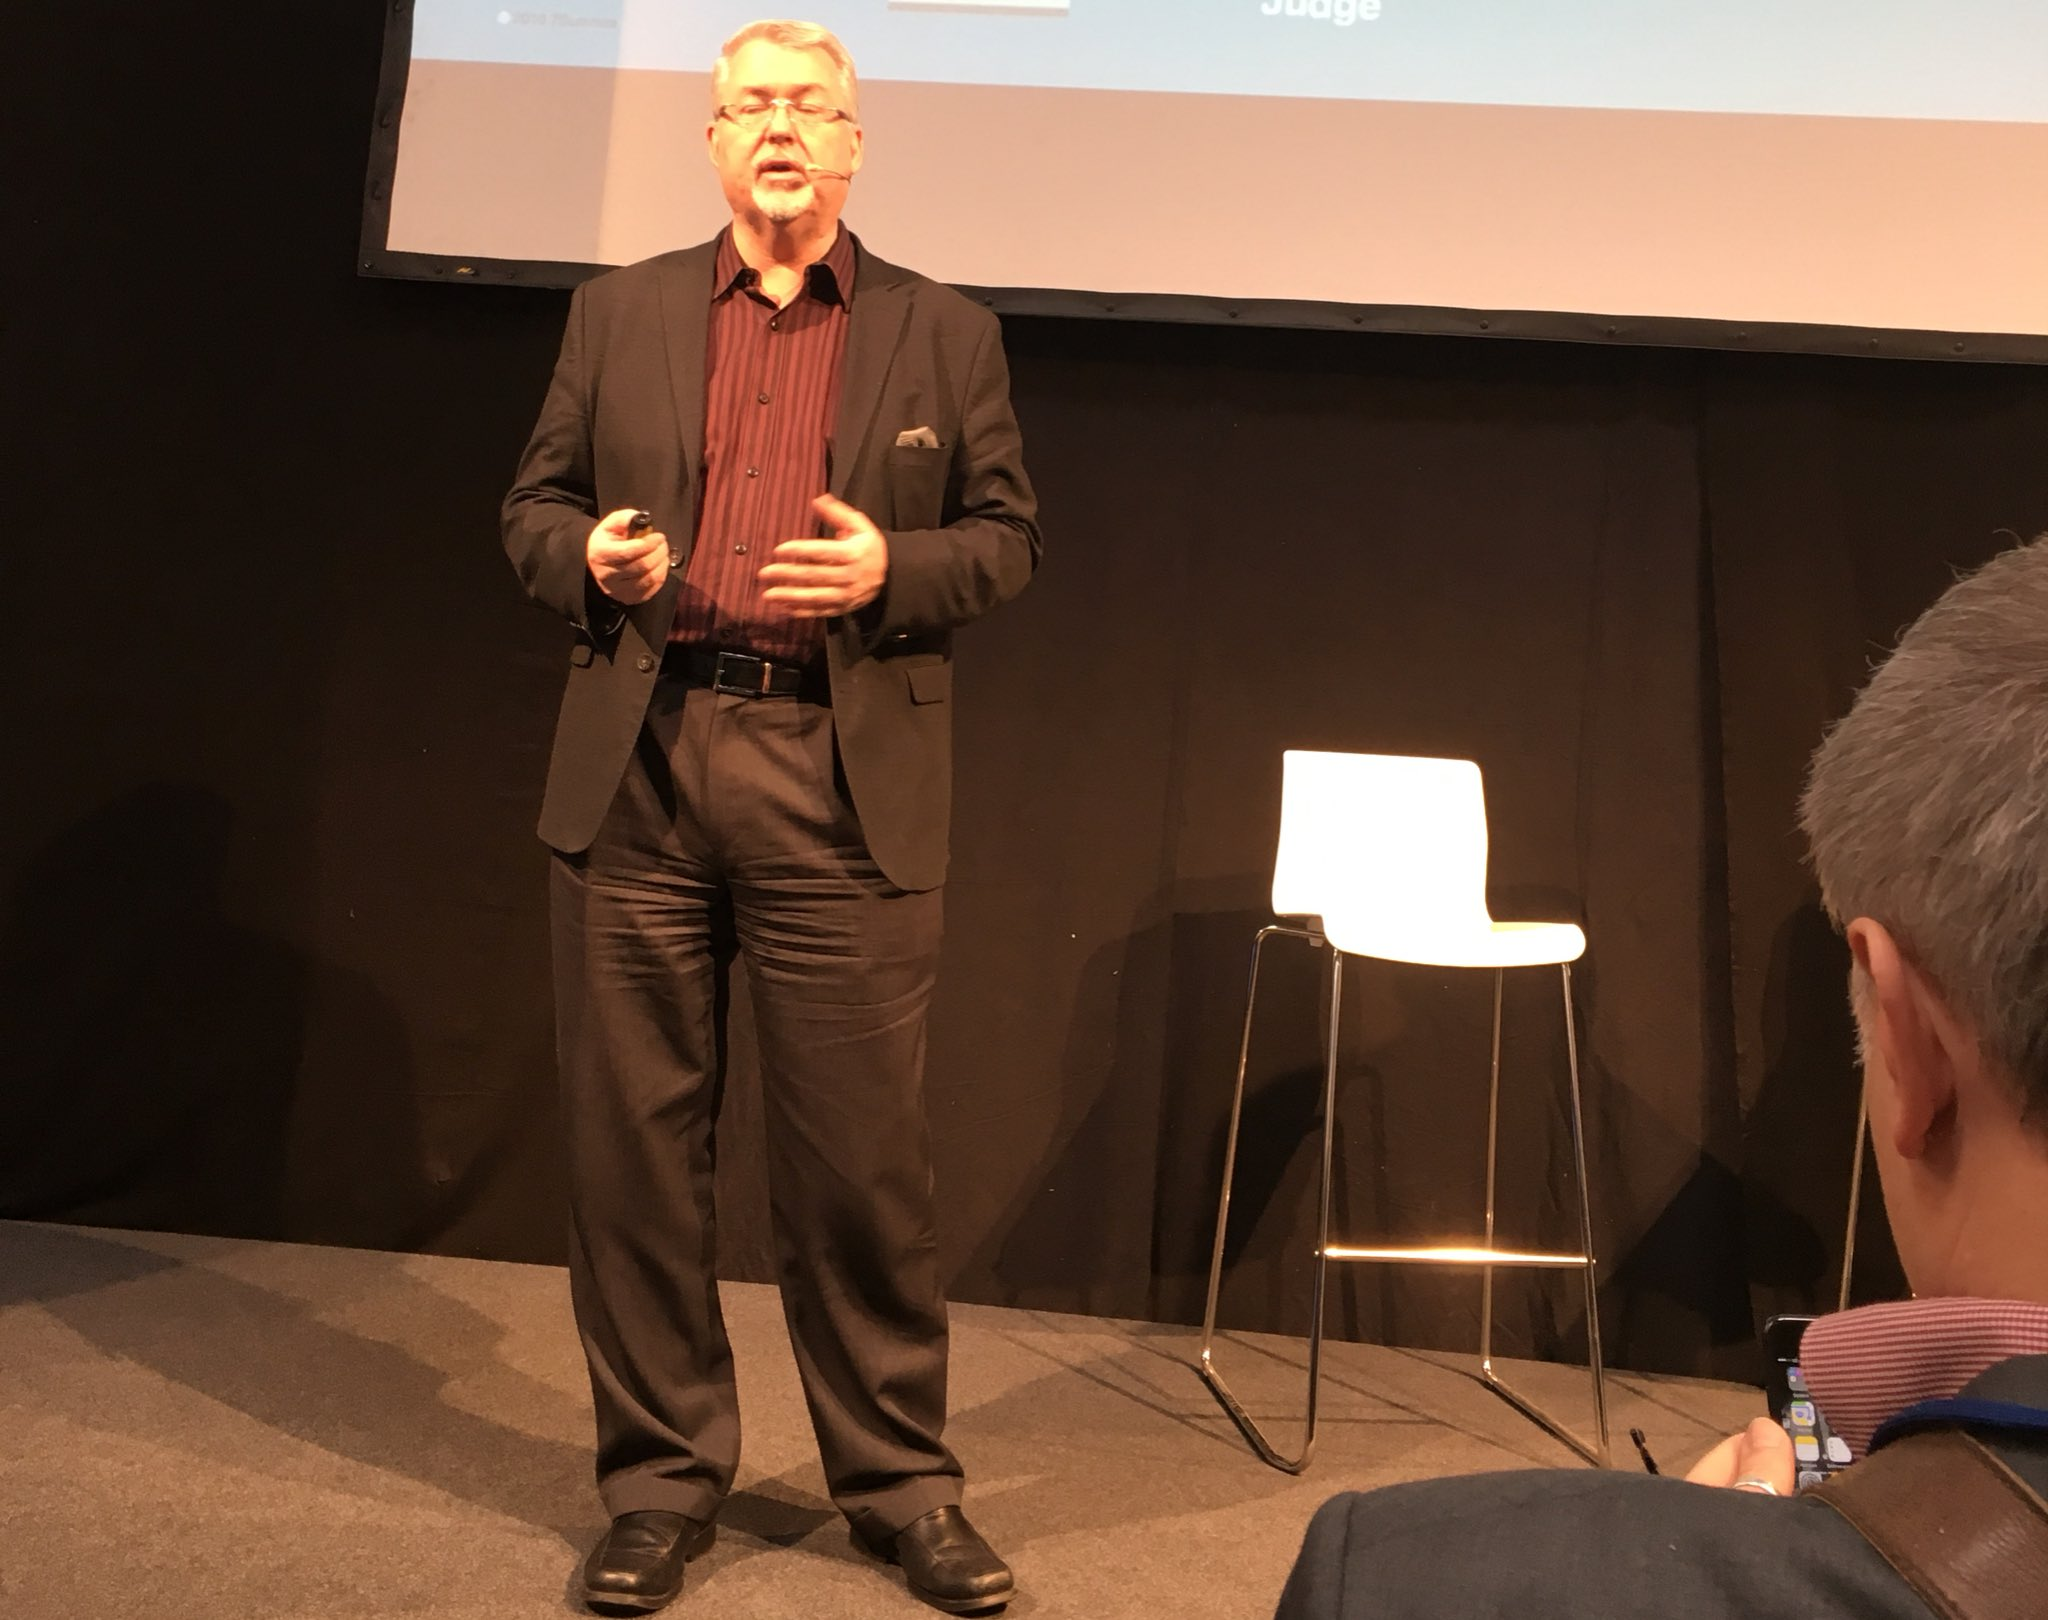 Don't miss Digital Workplace Mastermind @dhinchcliffe NOW on #cebiteda https://t.co/nDkY9bshC0